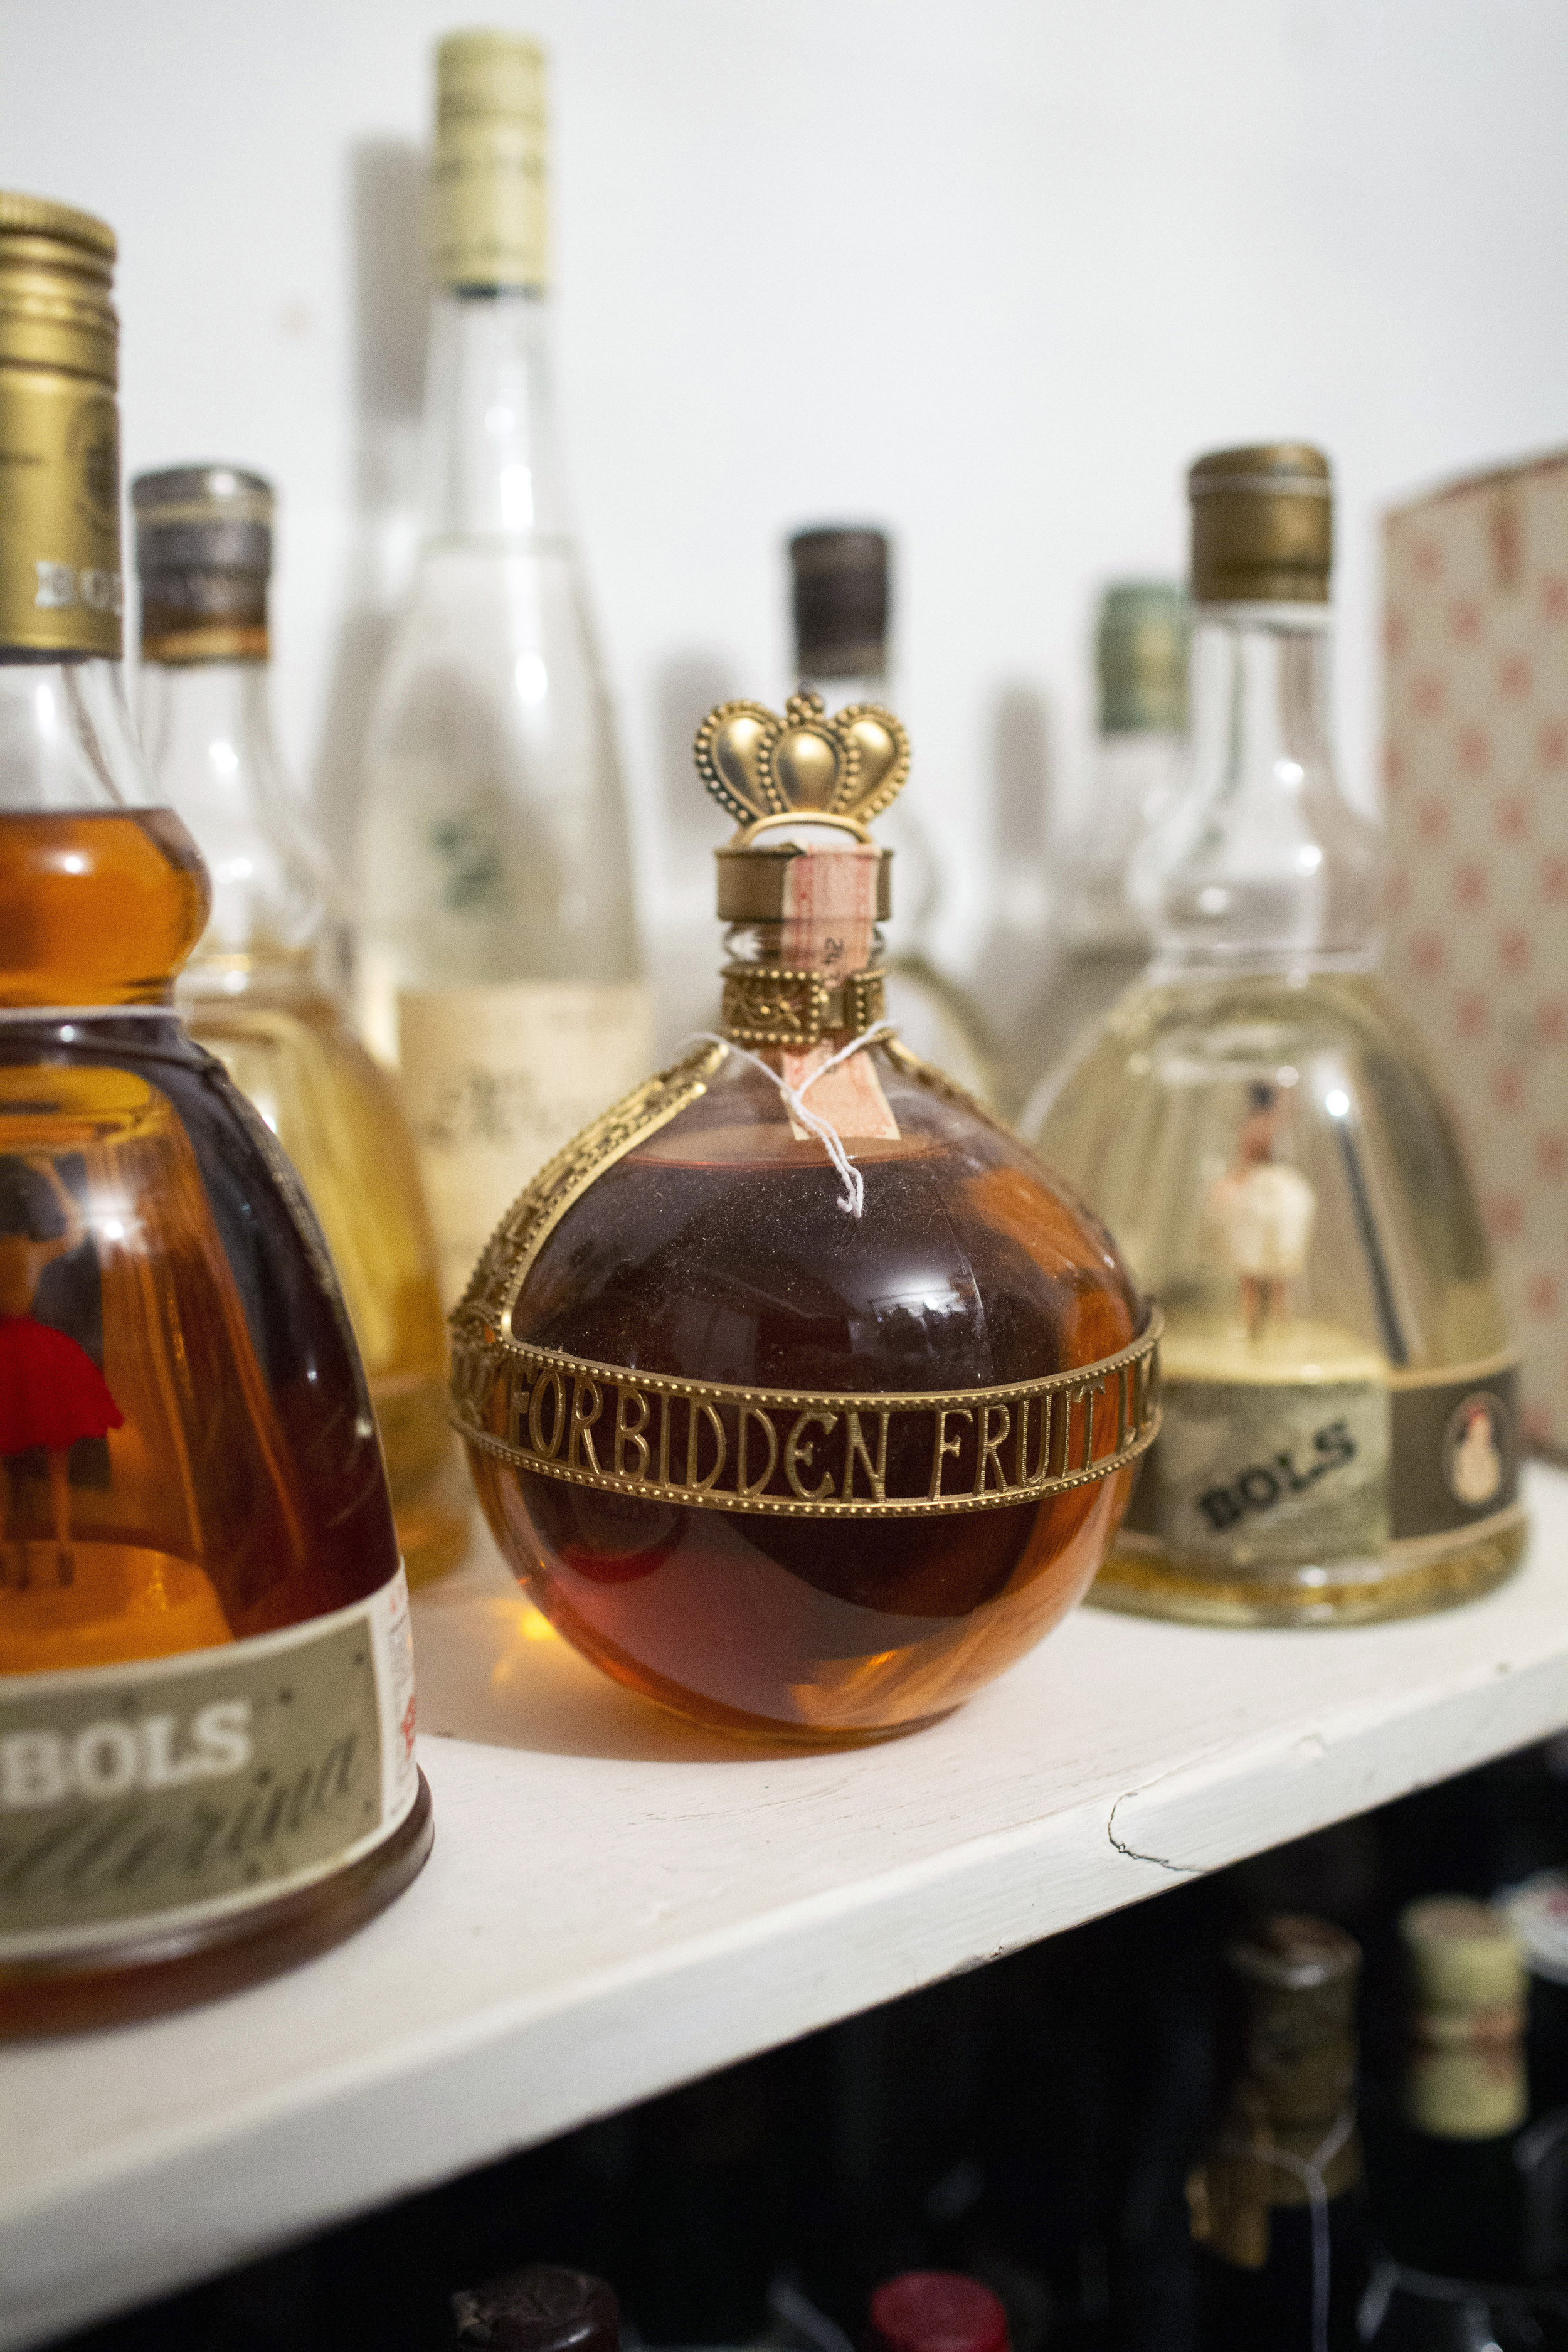 Forbidden Fruit Liqueur in the bottle style that would later be used for Chambord.